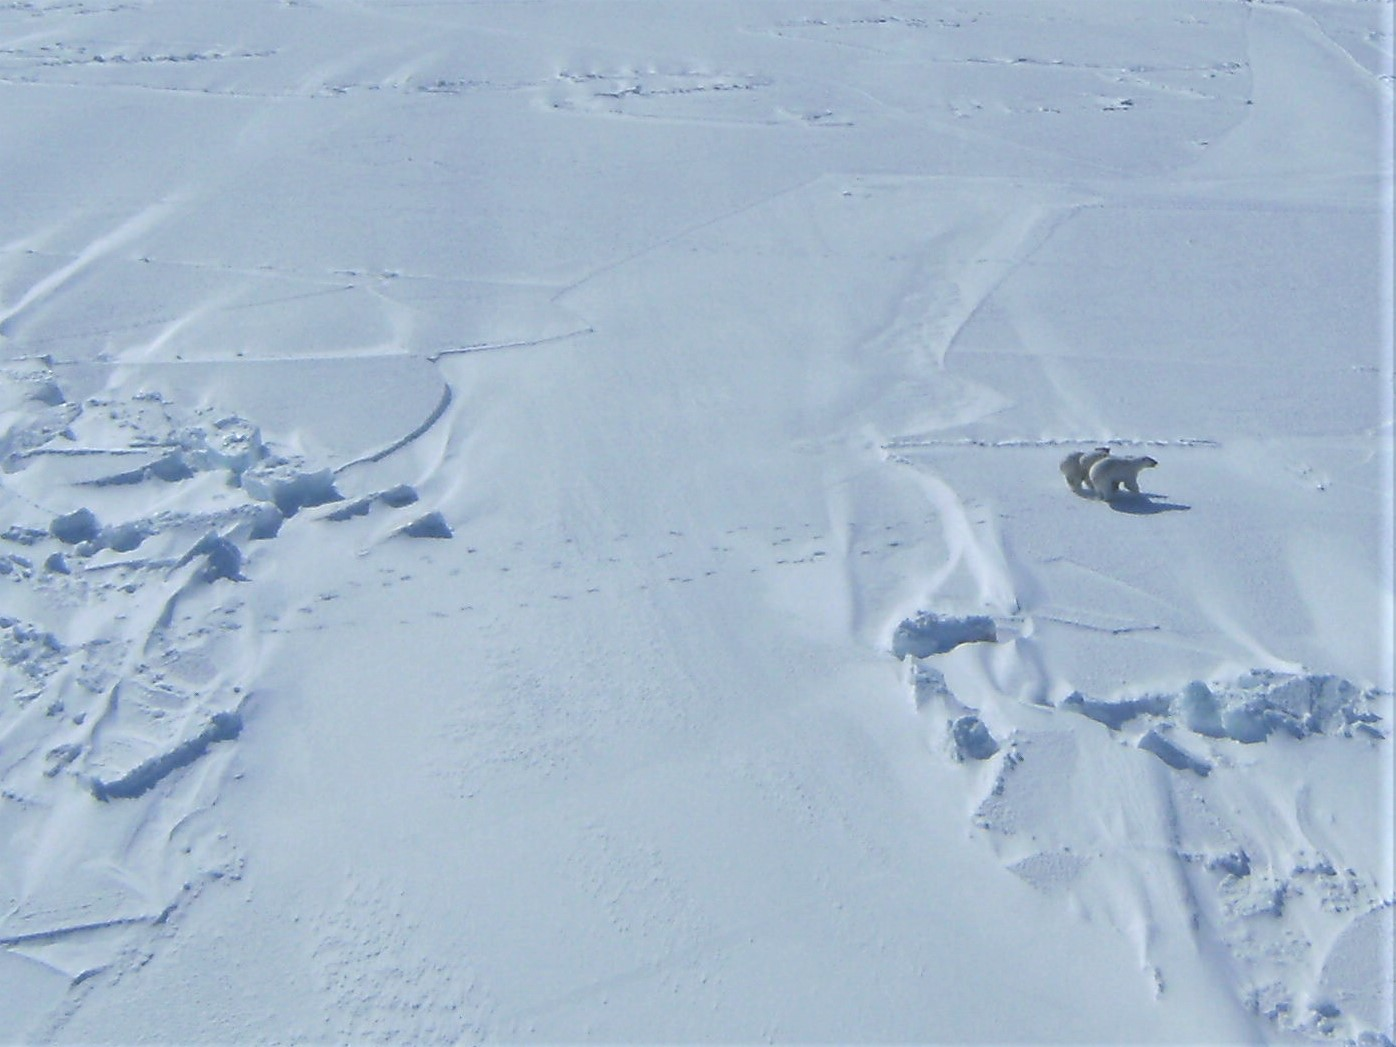 Aerial view of an adult polar bear with two cubs at her side walking over snow.